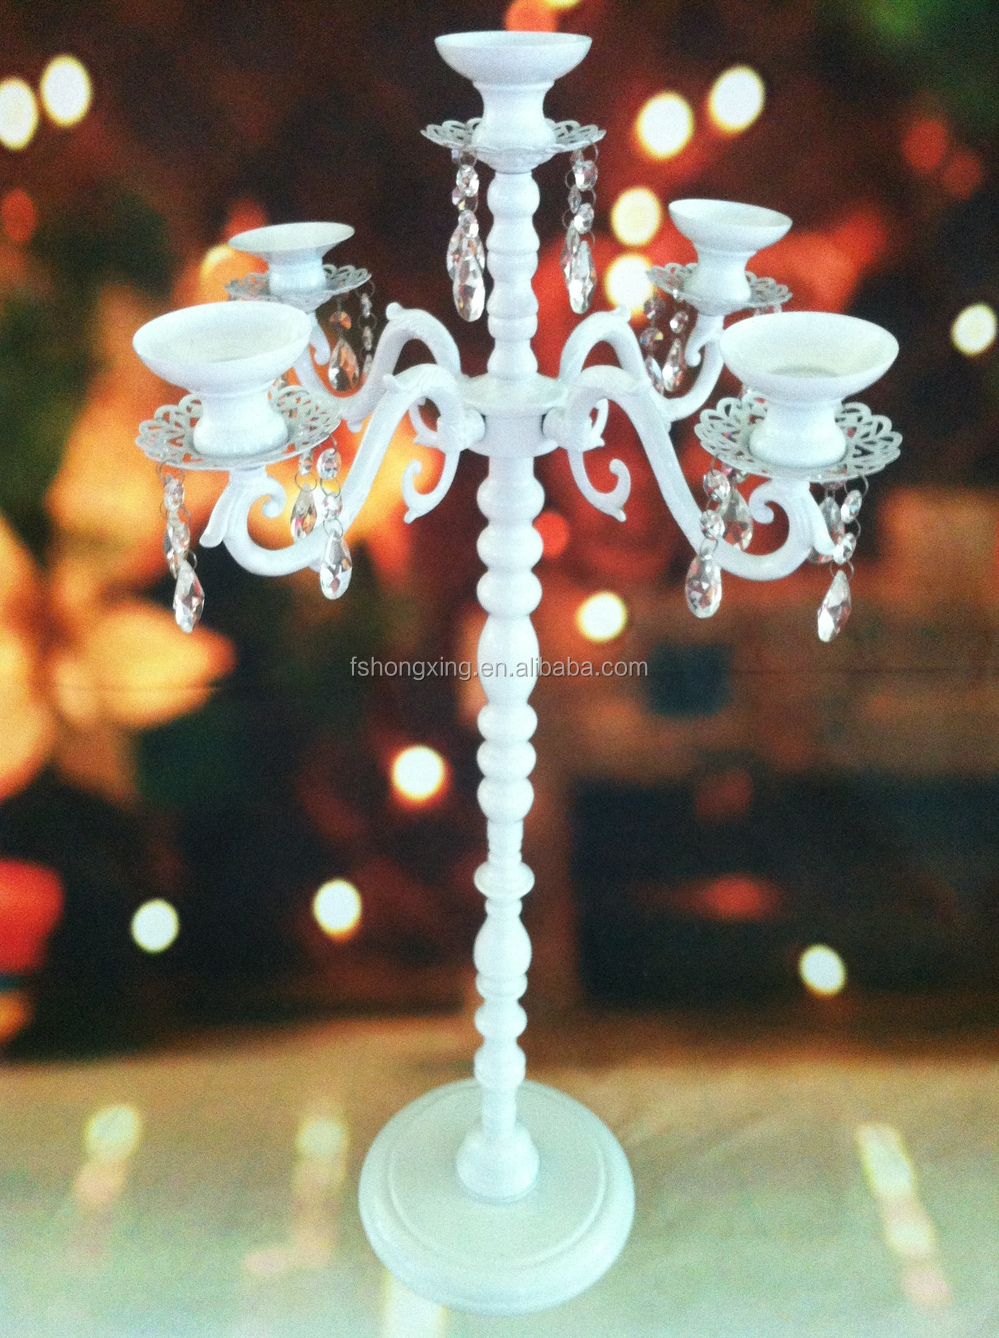 White metal and crystal hanging Candelabra for wedding table decoration centerpiece